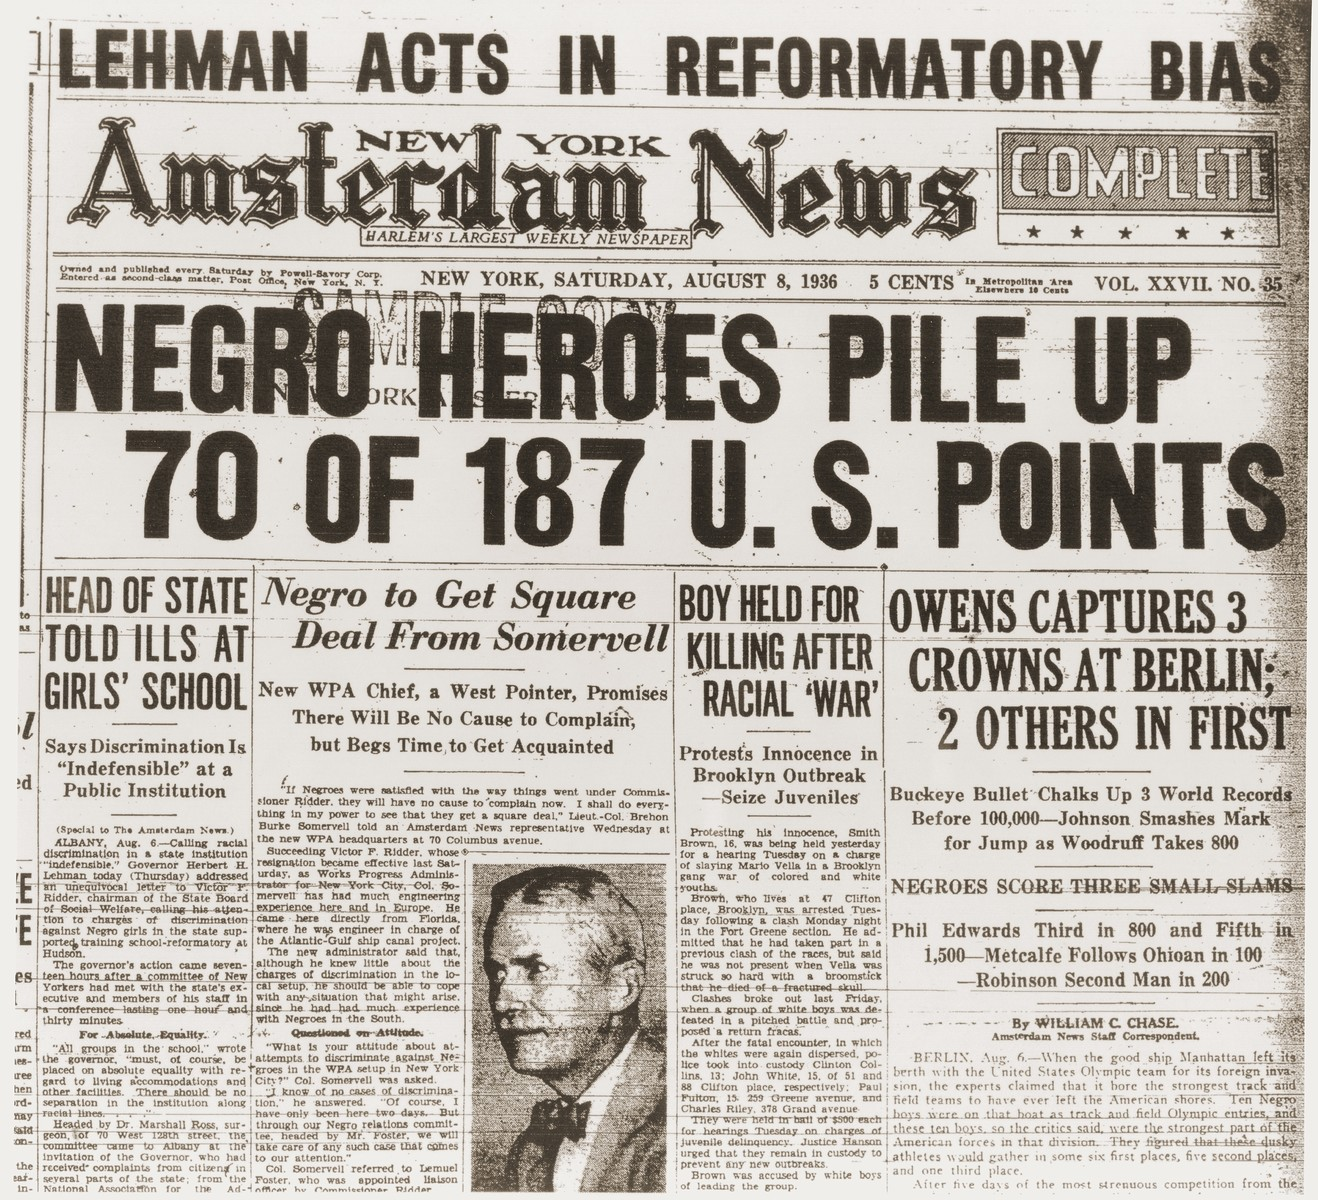 """Front page of the New York Amsterdam News, from during the 11th Summer Olympic Games, with the headline """"Negro Heroes Pile Up 70 of 187 U.S. Points.""""   The article describes victories by Jesse Owens, Cornelius Johnson, and John Woodruff, as well as second-place finishes by Ralph Metcalfe and Mack Robinson."""